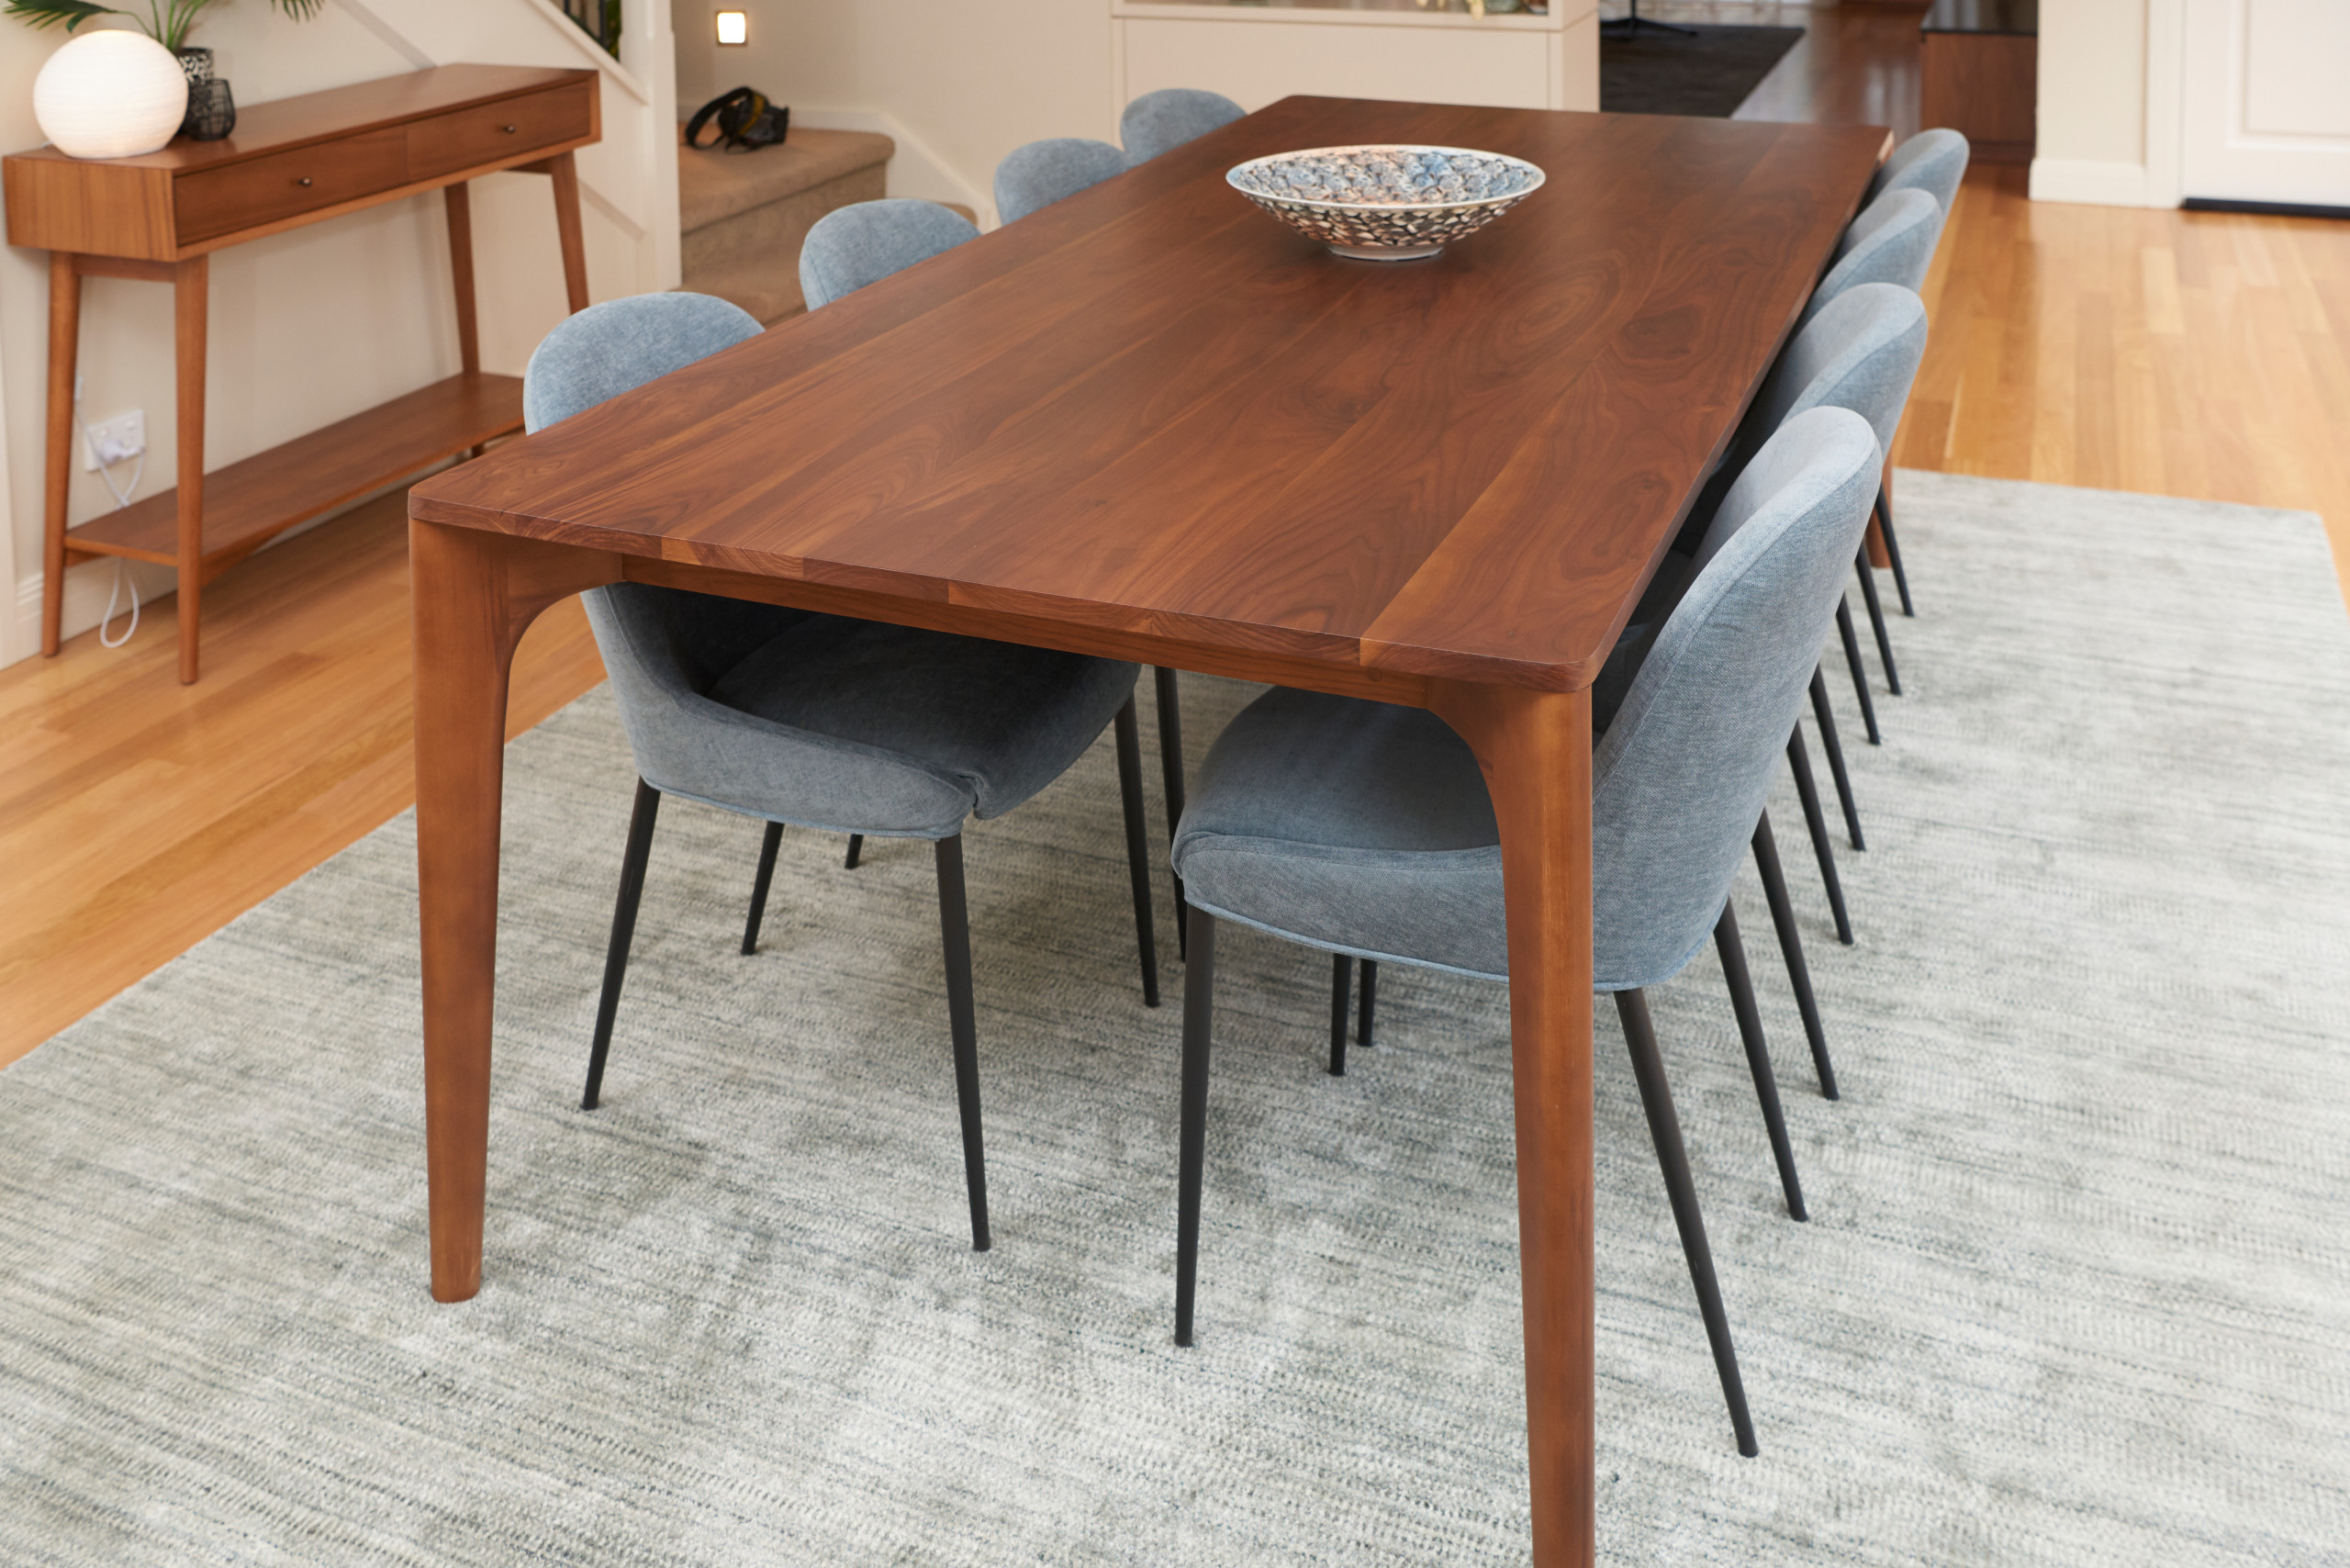 A hint of Mid-Century